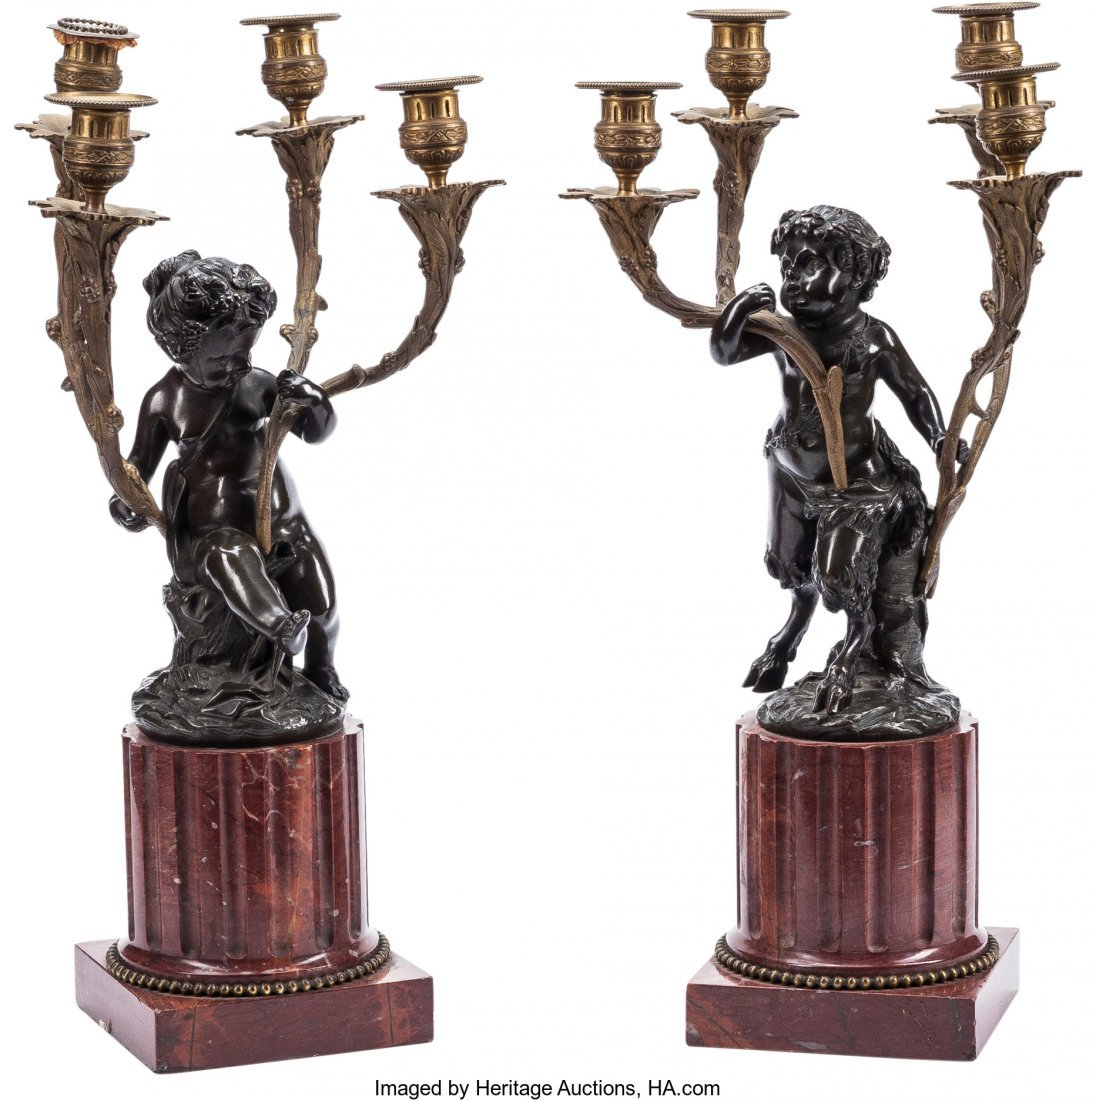 63398: A Pair of Louis XVI-Style Figural Four-Light Can